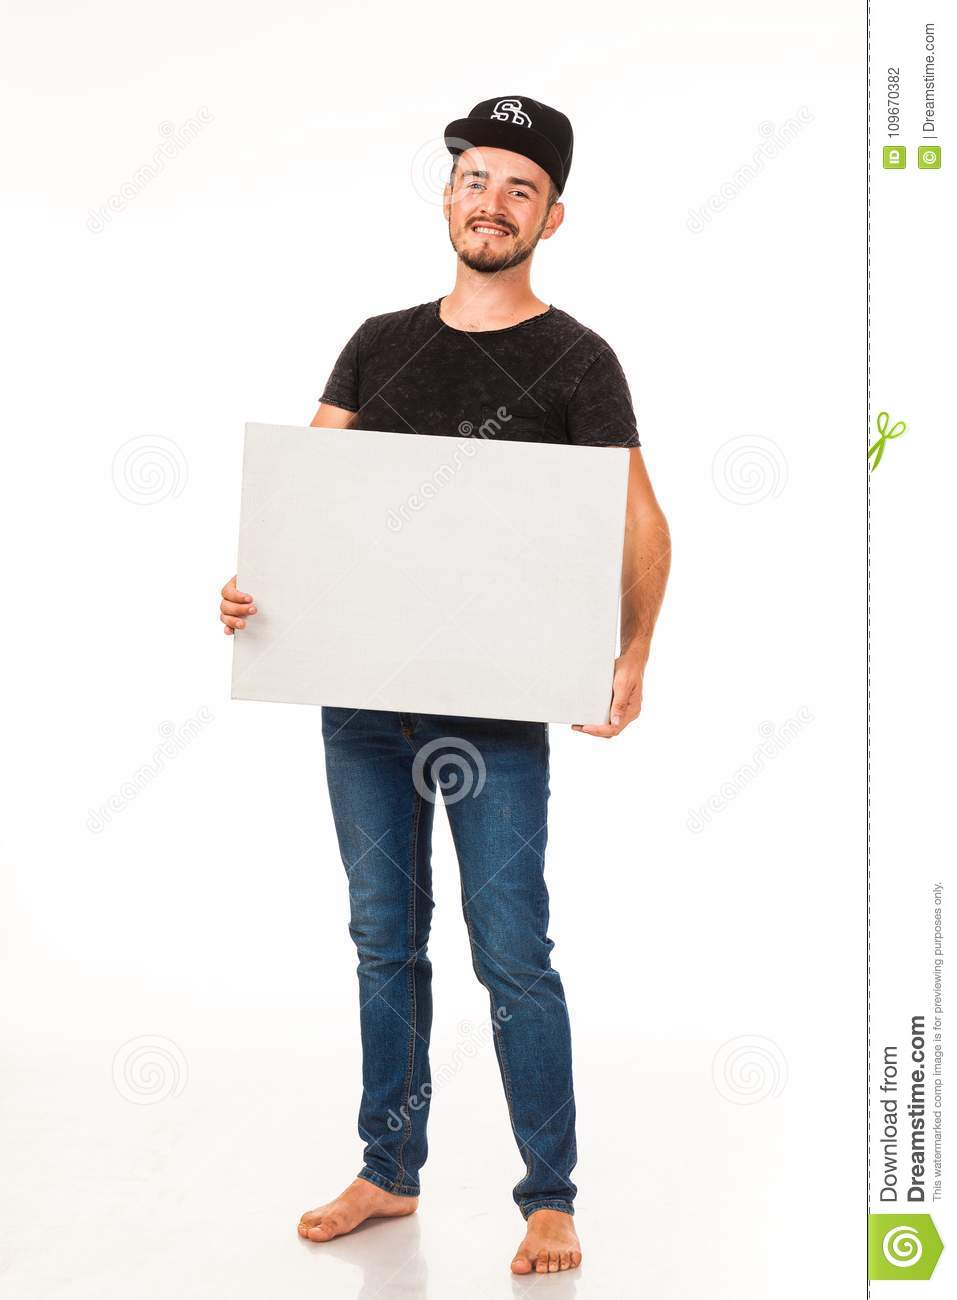 A guy with a beard posing with a white sign. Can be used for advertising, logo and business cards, contact phones, shares, etc.